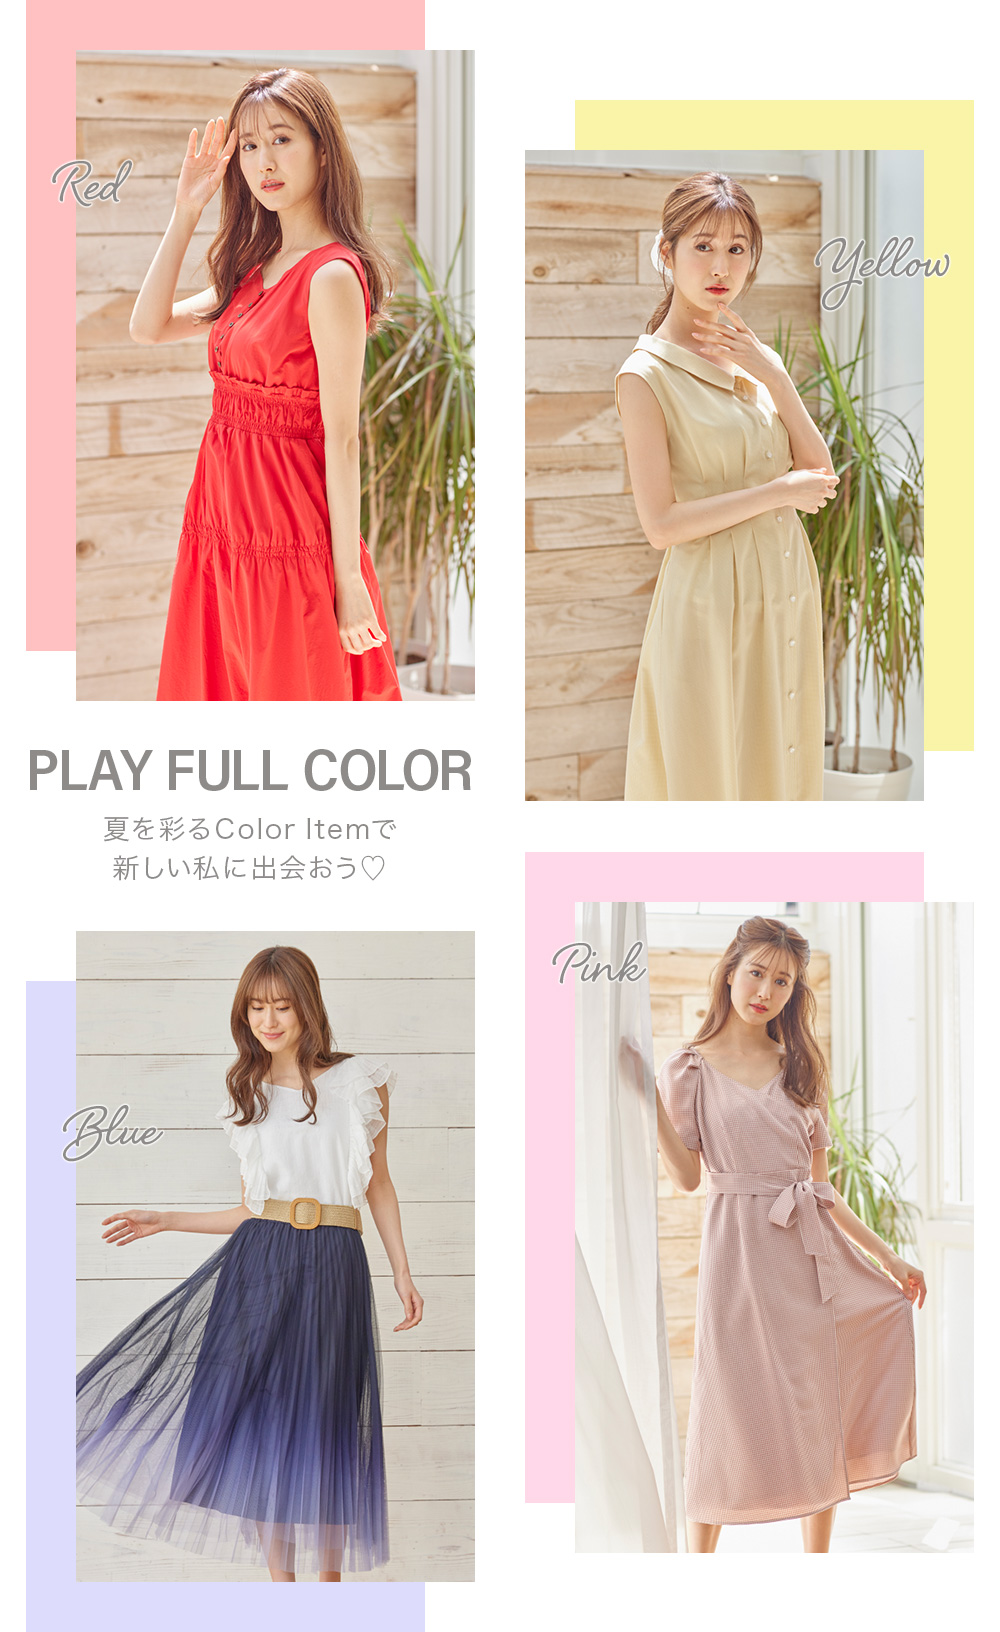 PLAY FULL COLOR 夏を彩るColor Itemで新しい私に出会おう